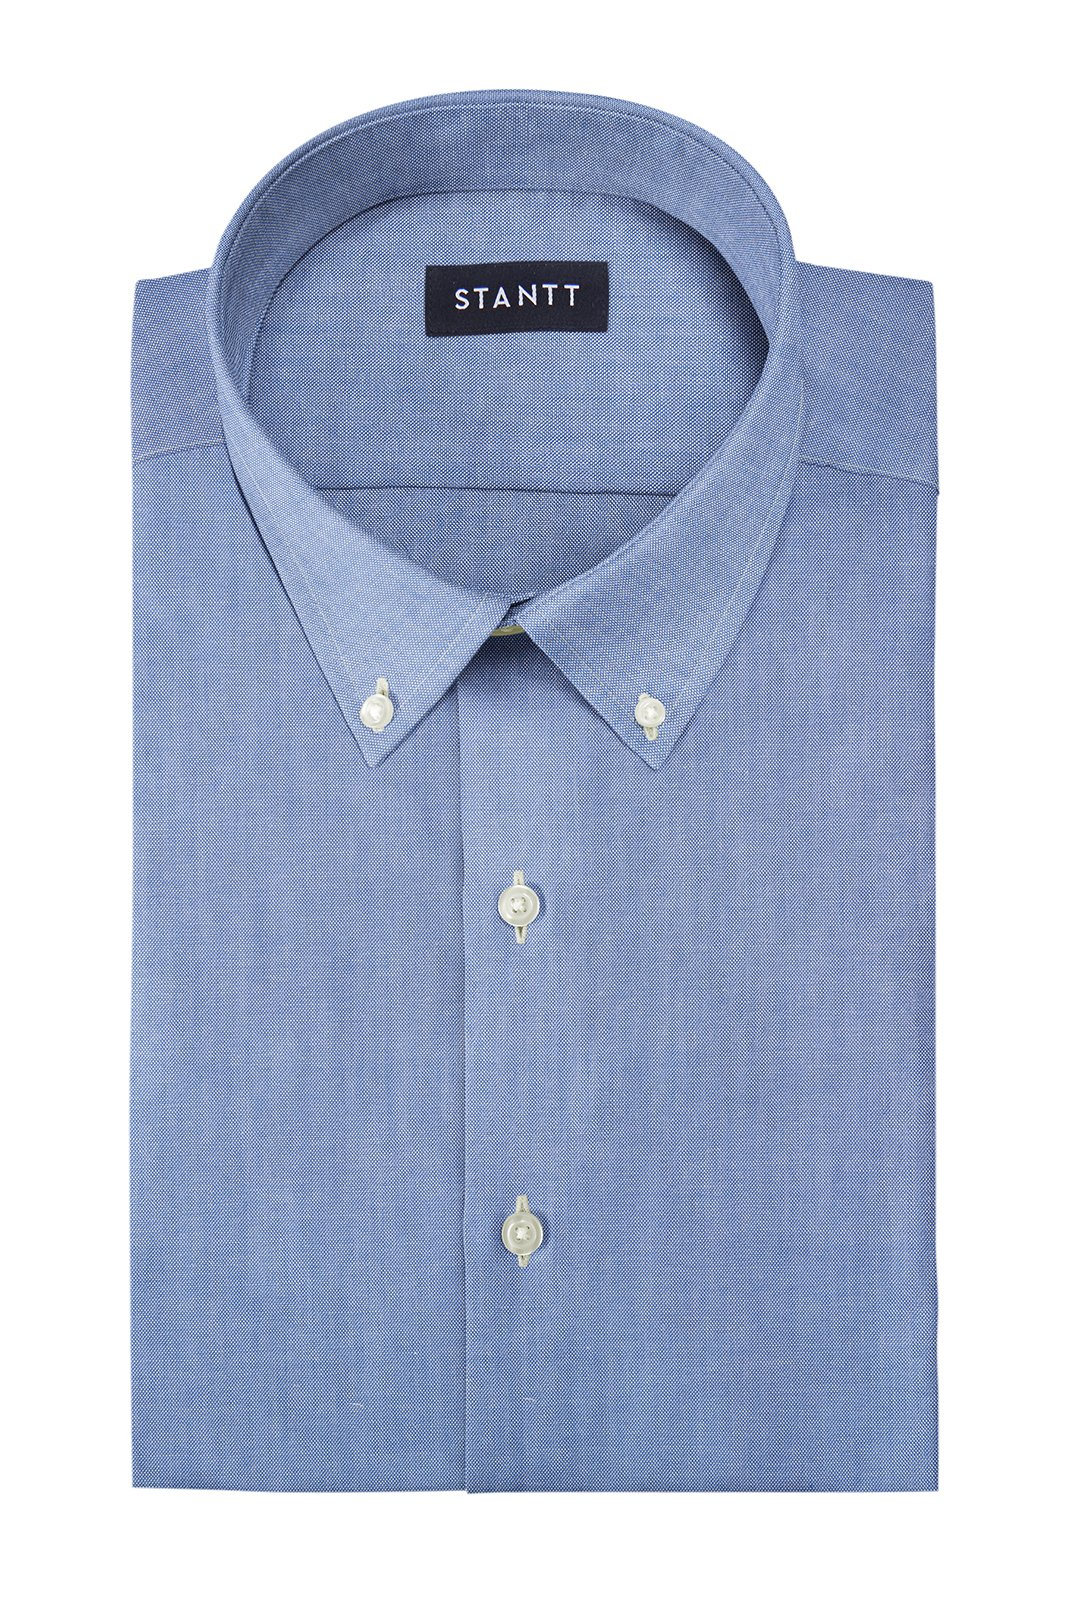 Indigo Oxford Chambray: Button-Down Collar, Barrel Cuff